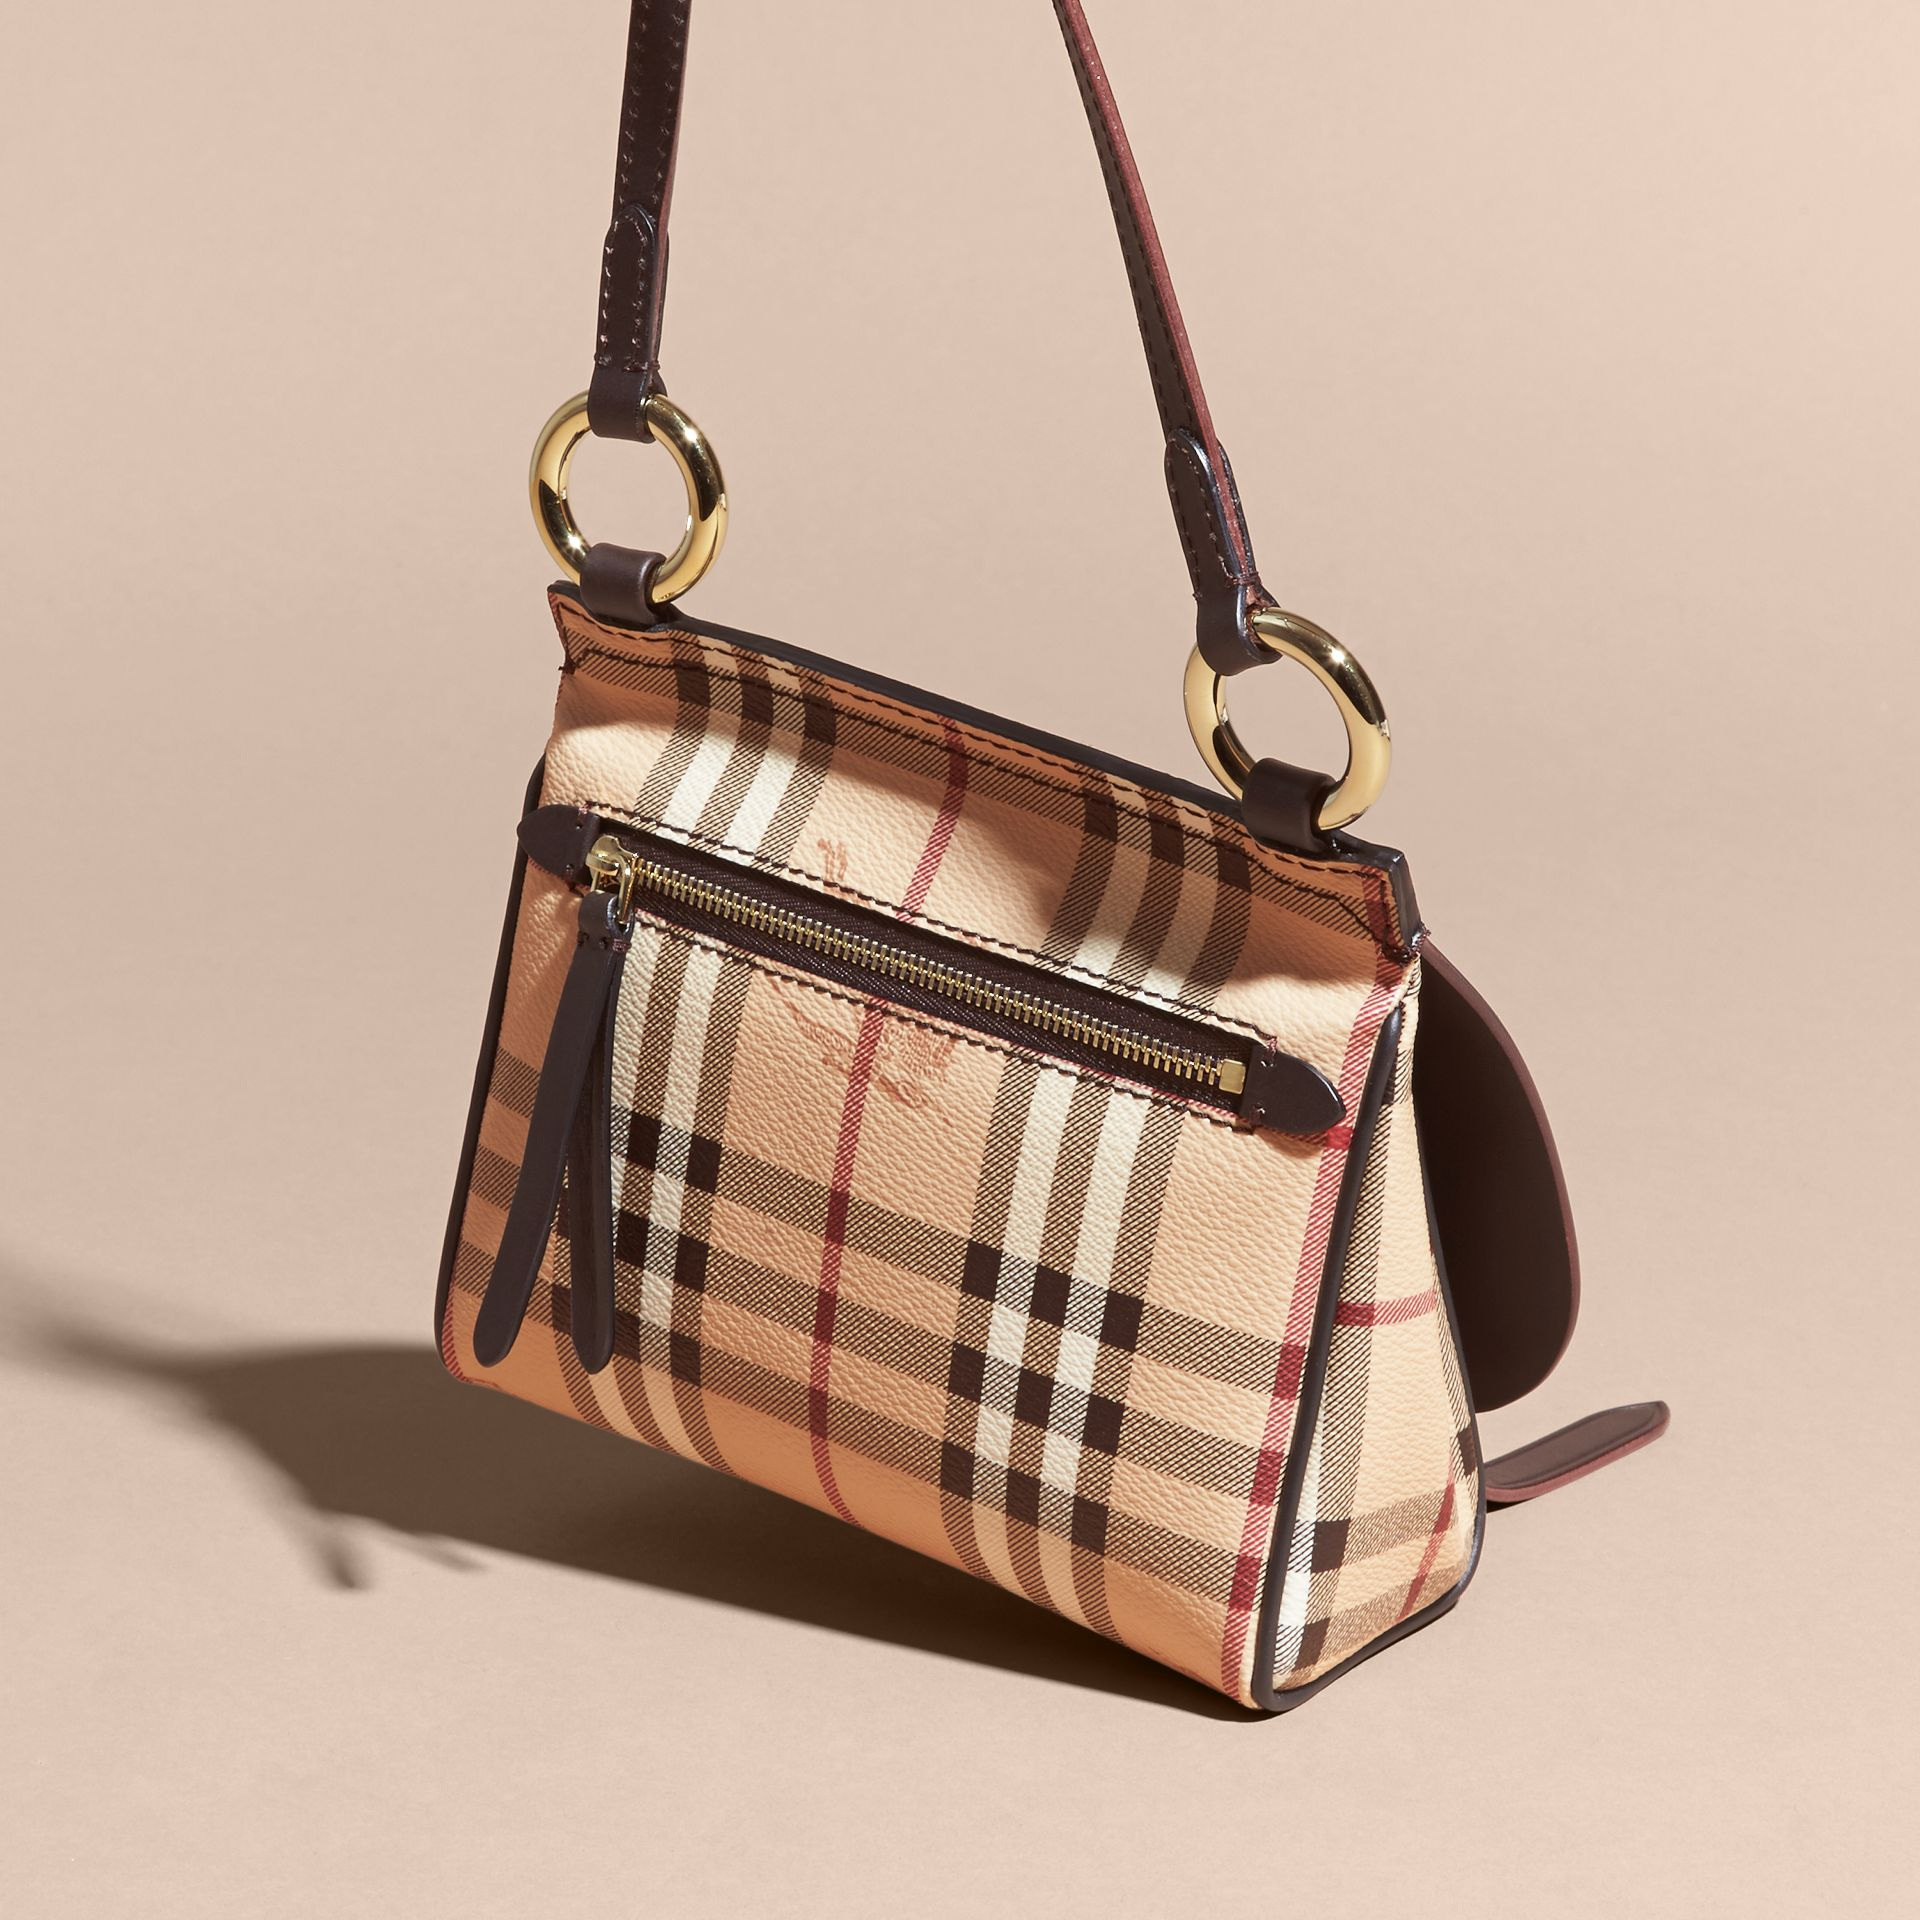 Sac The Baby Bridle en cuir et tissu Haymarket check (Marron Girofle Sombre) - Femme | Burberry - photo de la galerie 4